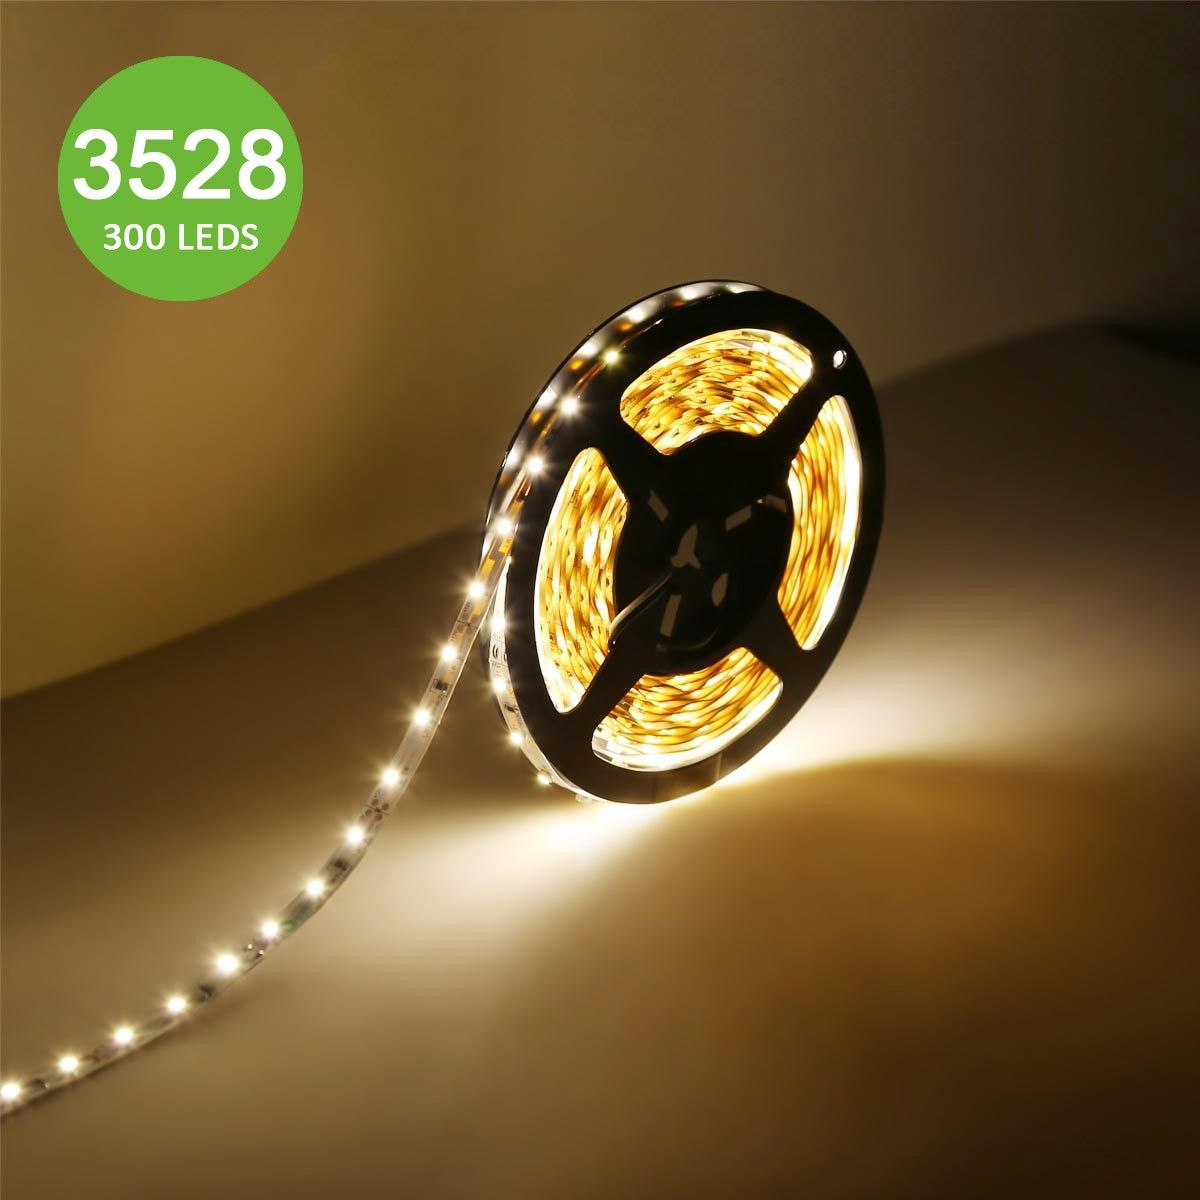 164ft flexible led strip rope lights12v warm white 300 units 12v flexible led strip lights led tape warm white 300 units 3528 leds mozeypictures Choice Image